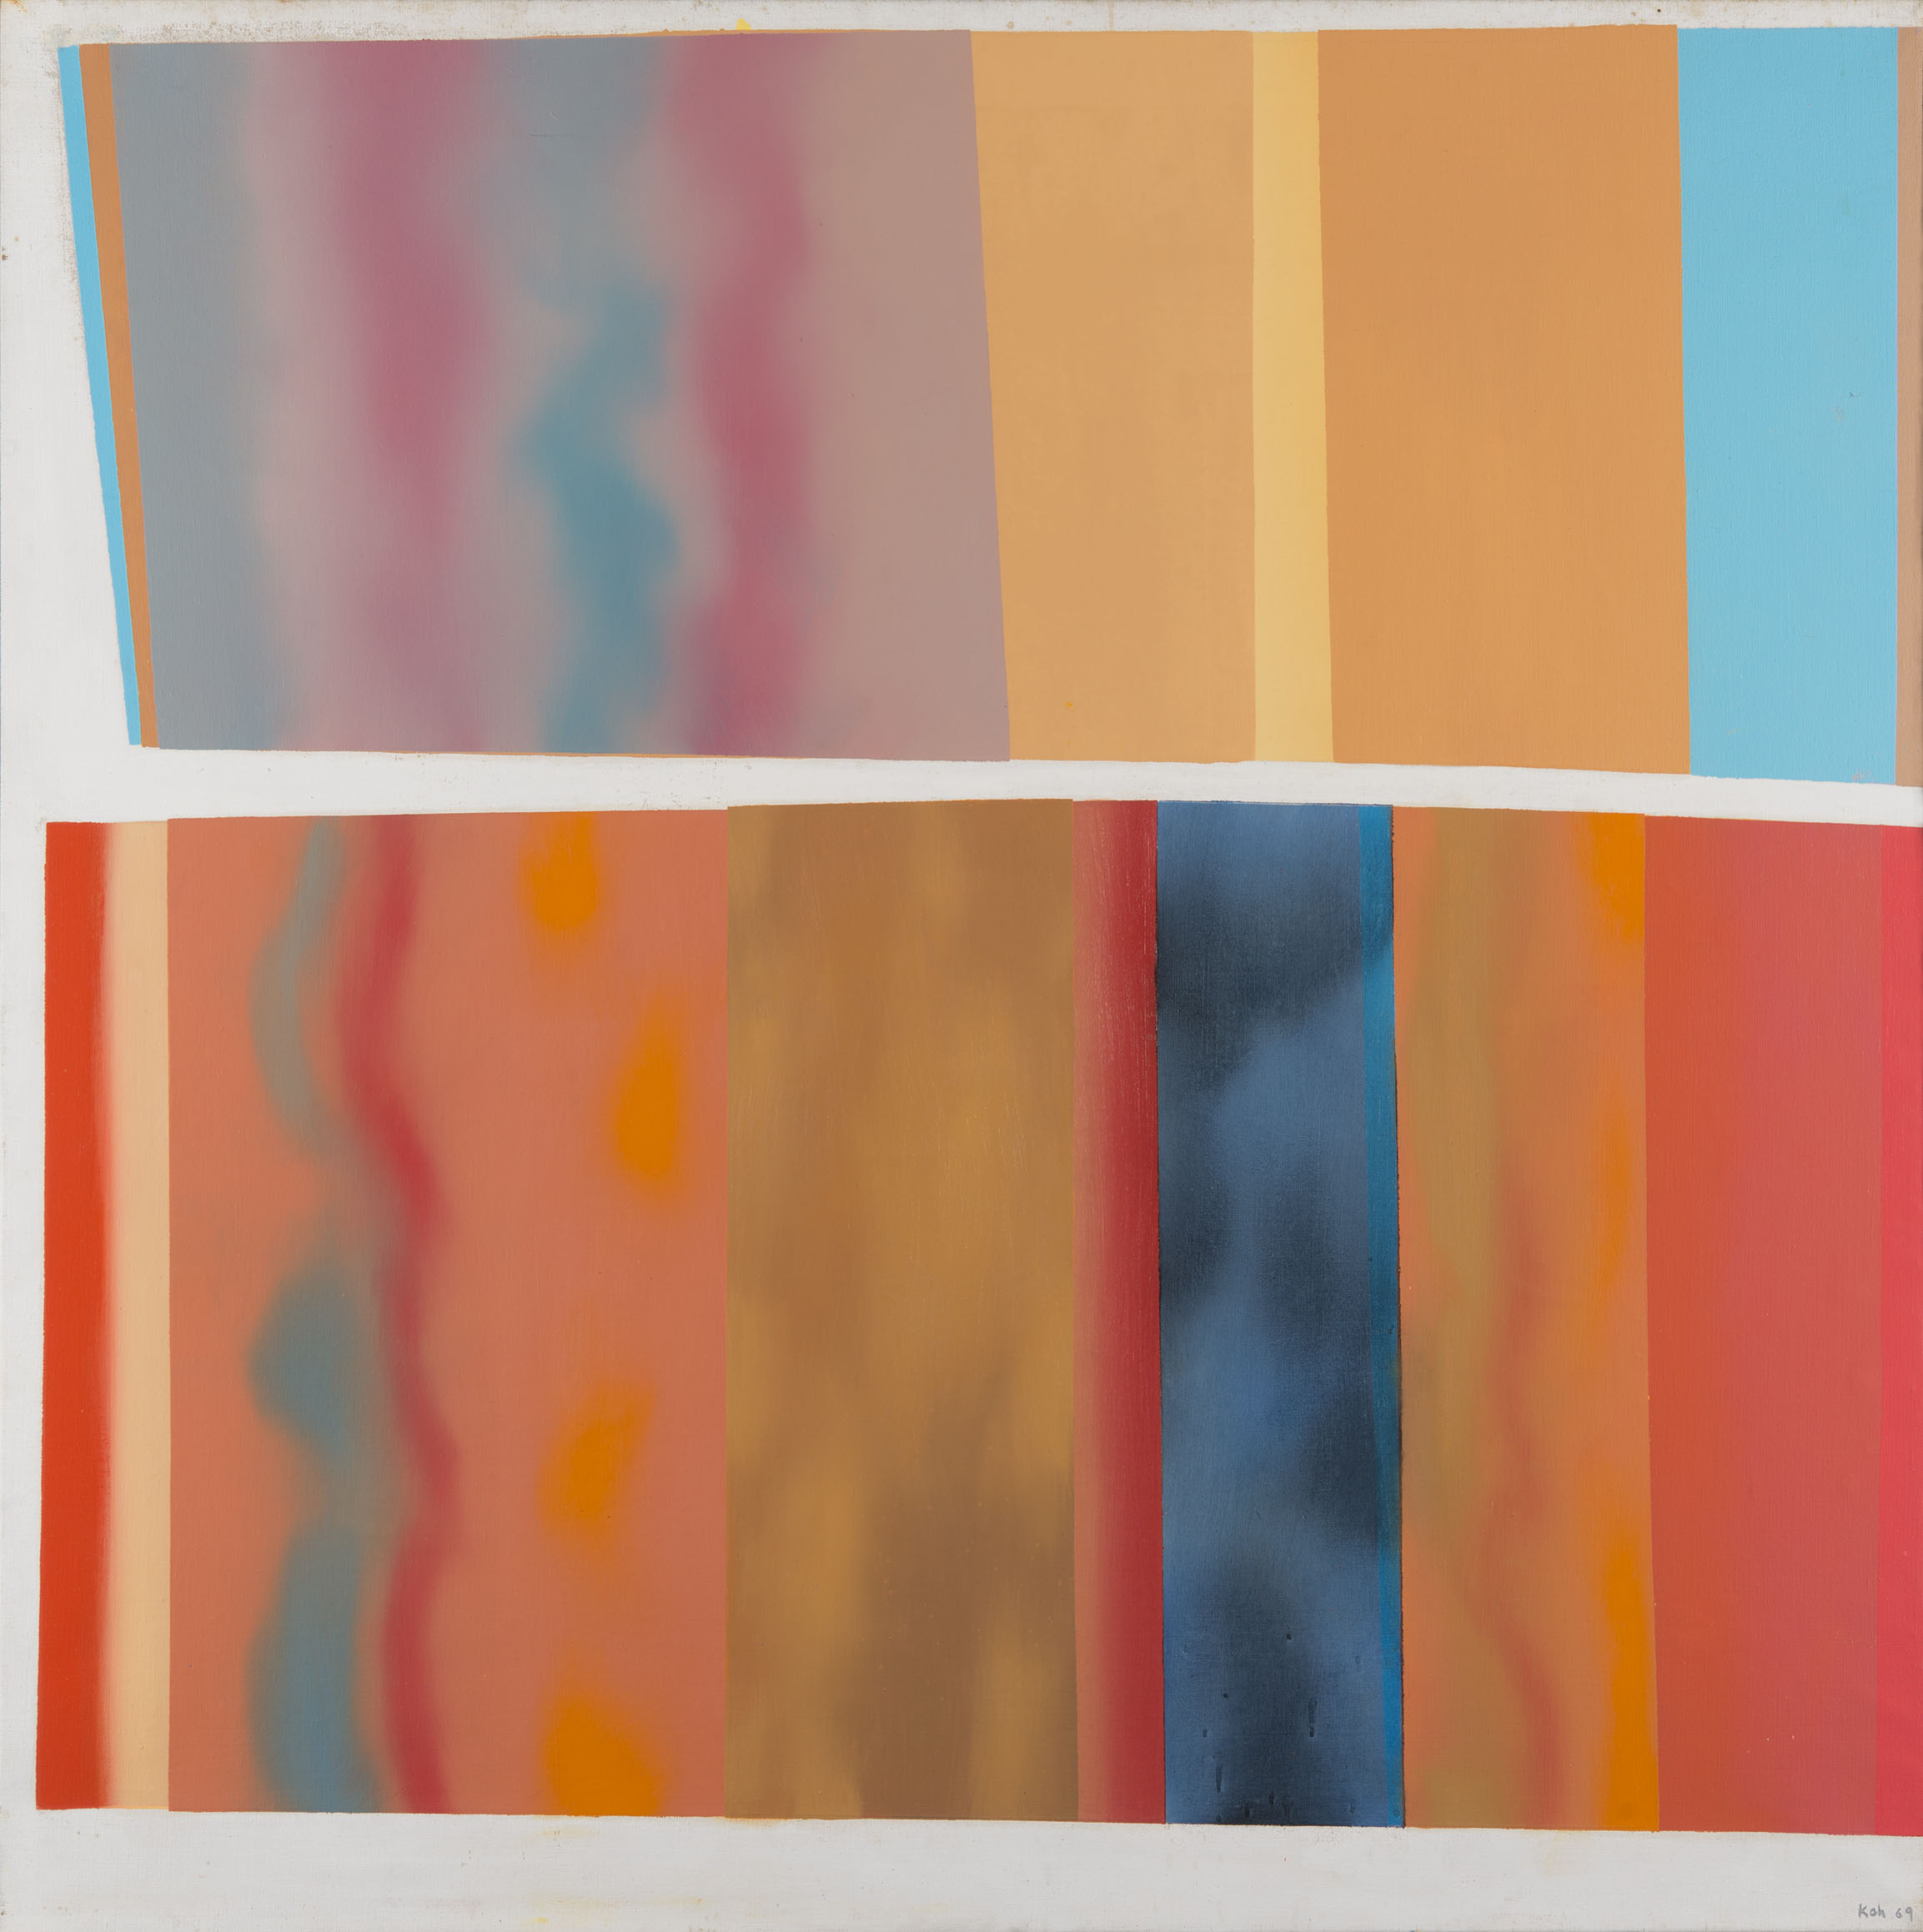 Wanda, II, 1969, Oil on Canvas, 109cm x 109cm